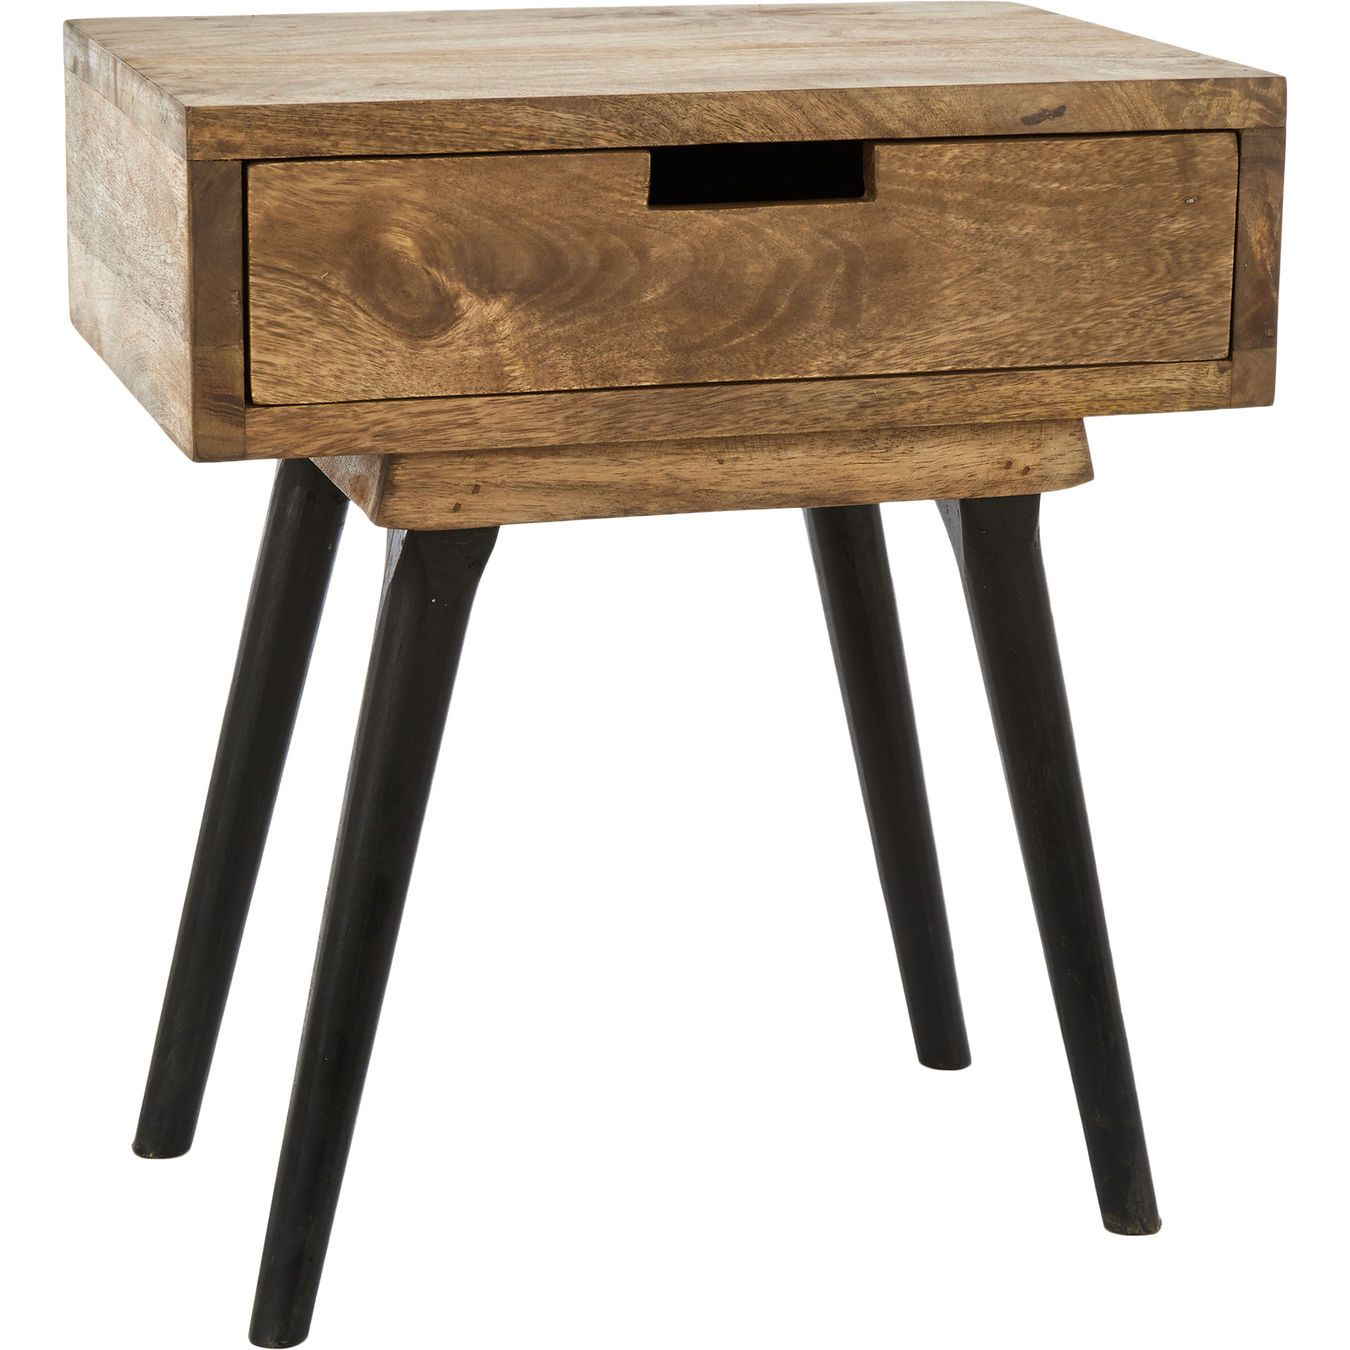 Brown wooden bedside table living room home tk maxx home brown wooden bedside table living room home tk maxx reviewsmspy